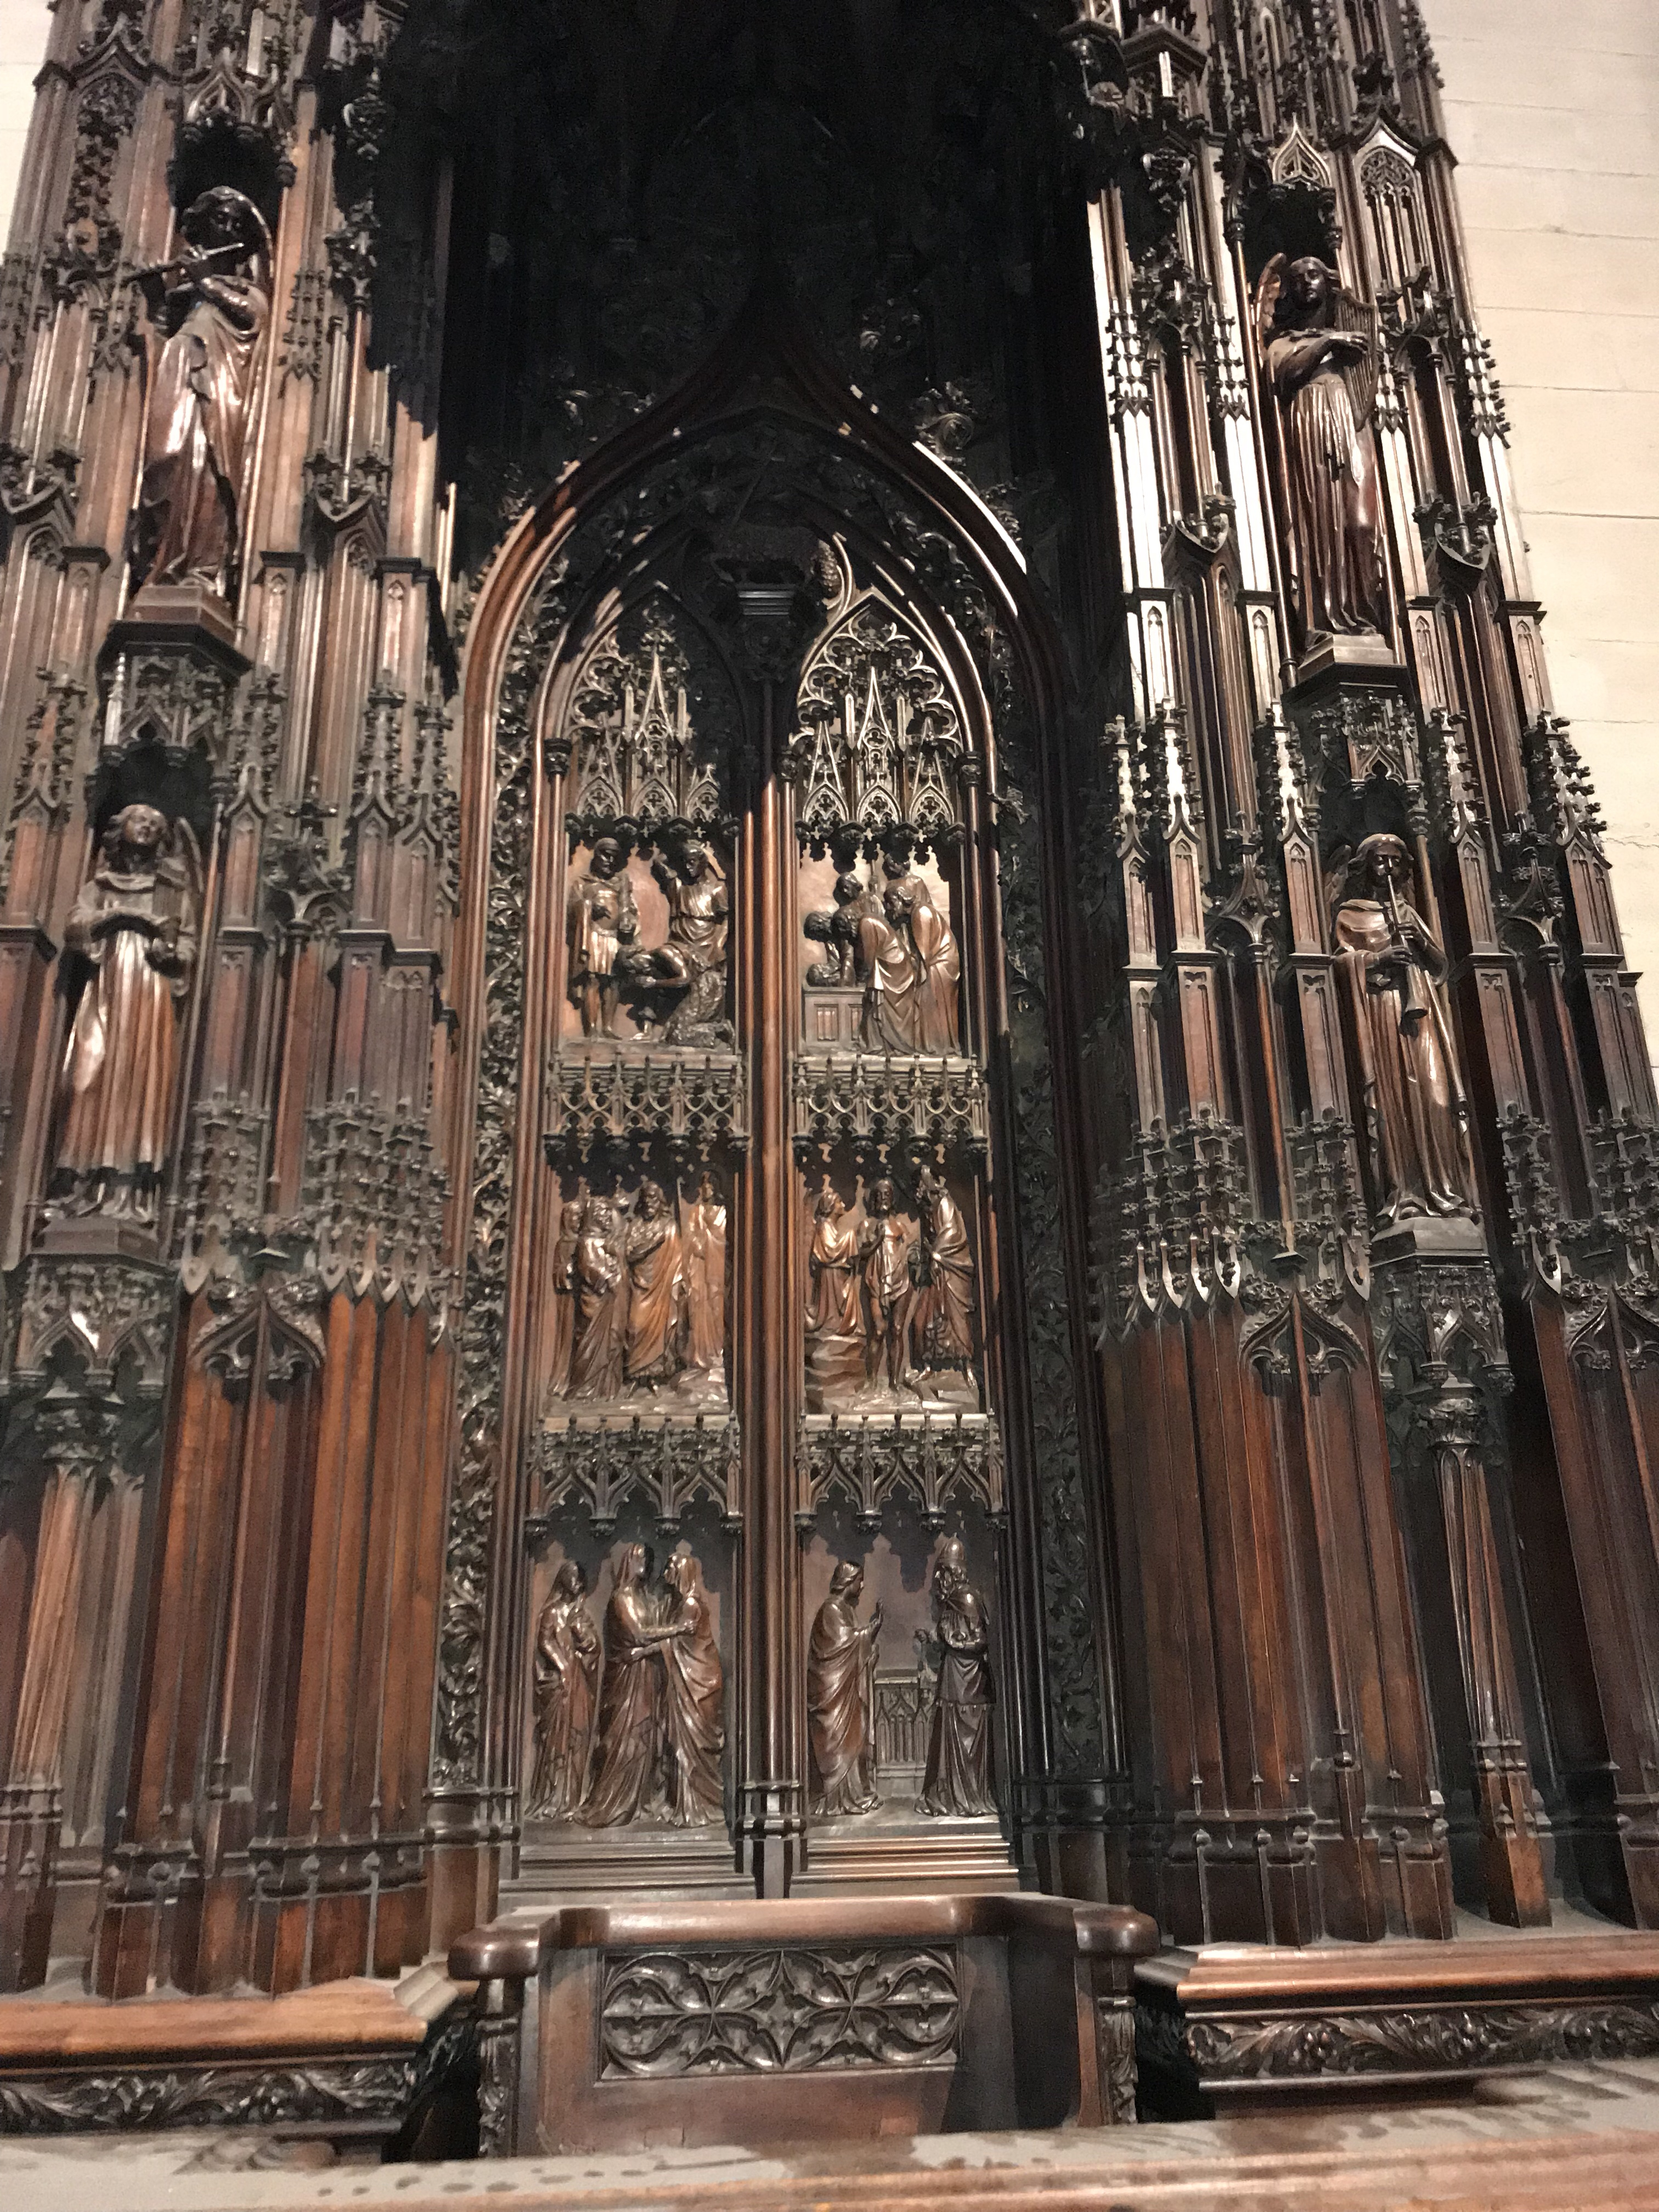 Carved wood piece from Lyon Cathedral. The panels on the doors in the center appear to depict the list of John the Baptist